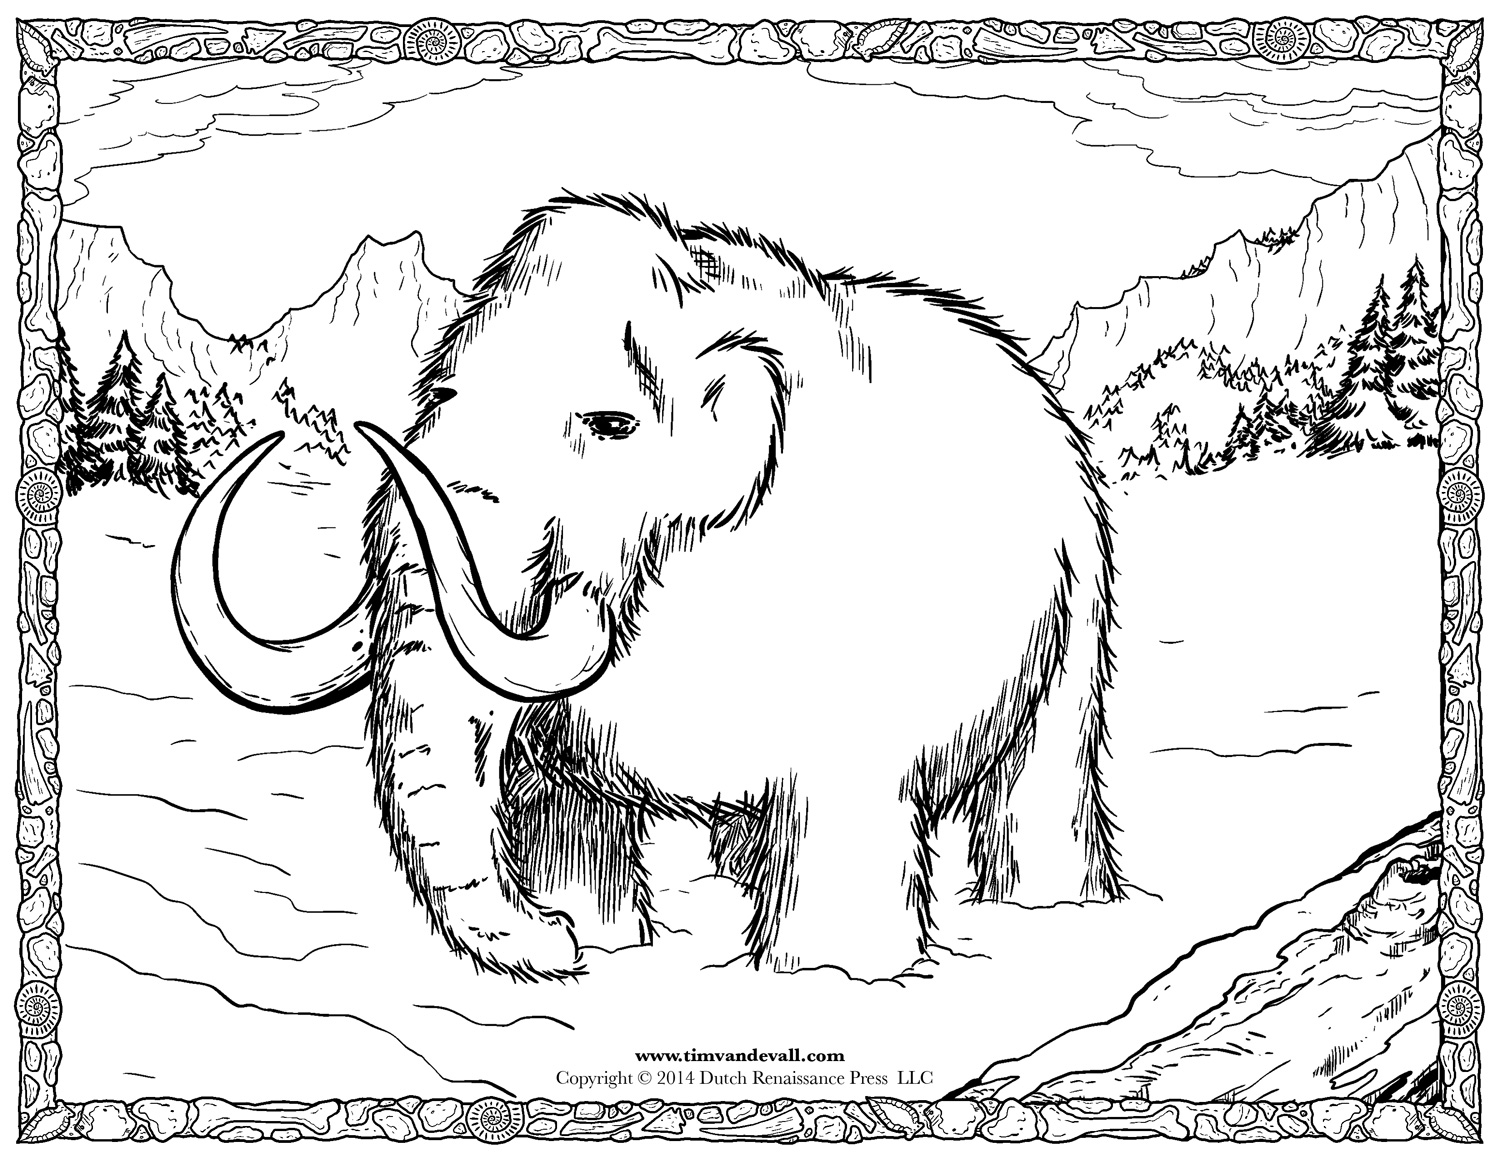 Woolly mammoth facts for kids social studies printables for Wooly mammoth coloring page